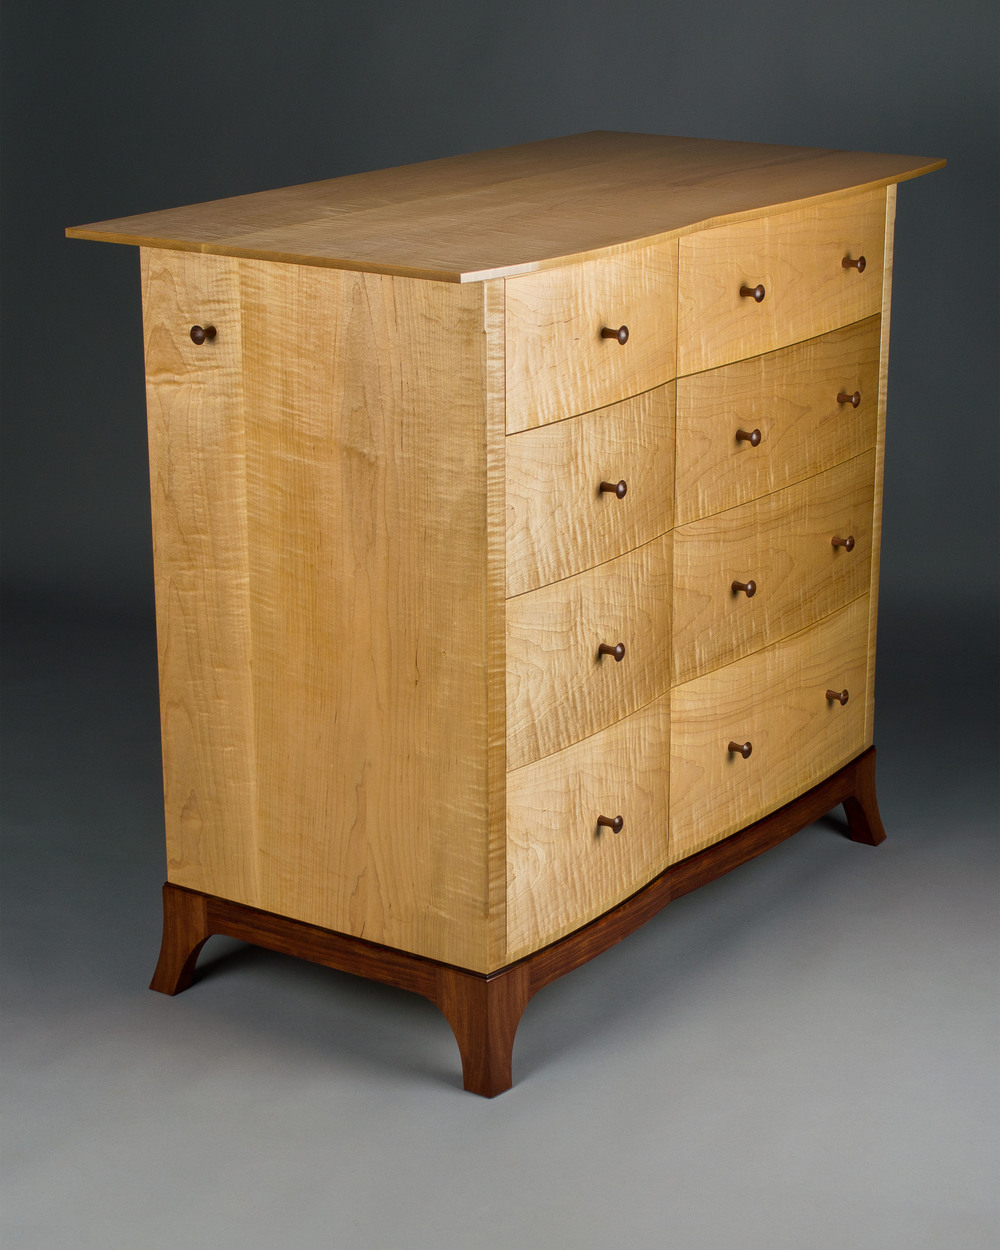 hand-crafted-details-on-chest-of-drawers.jpg